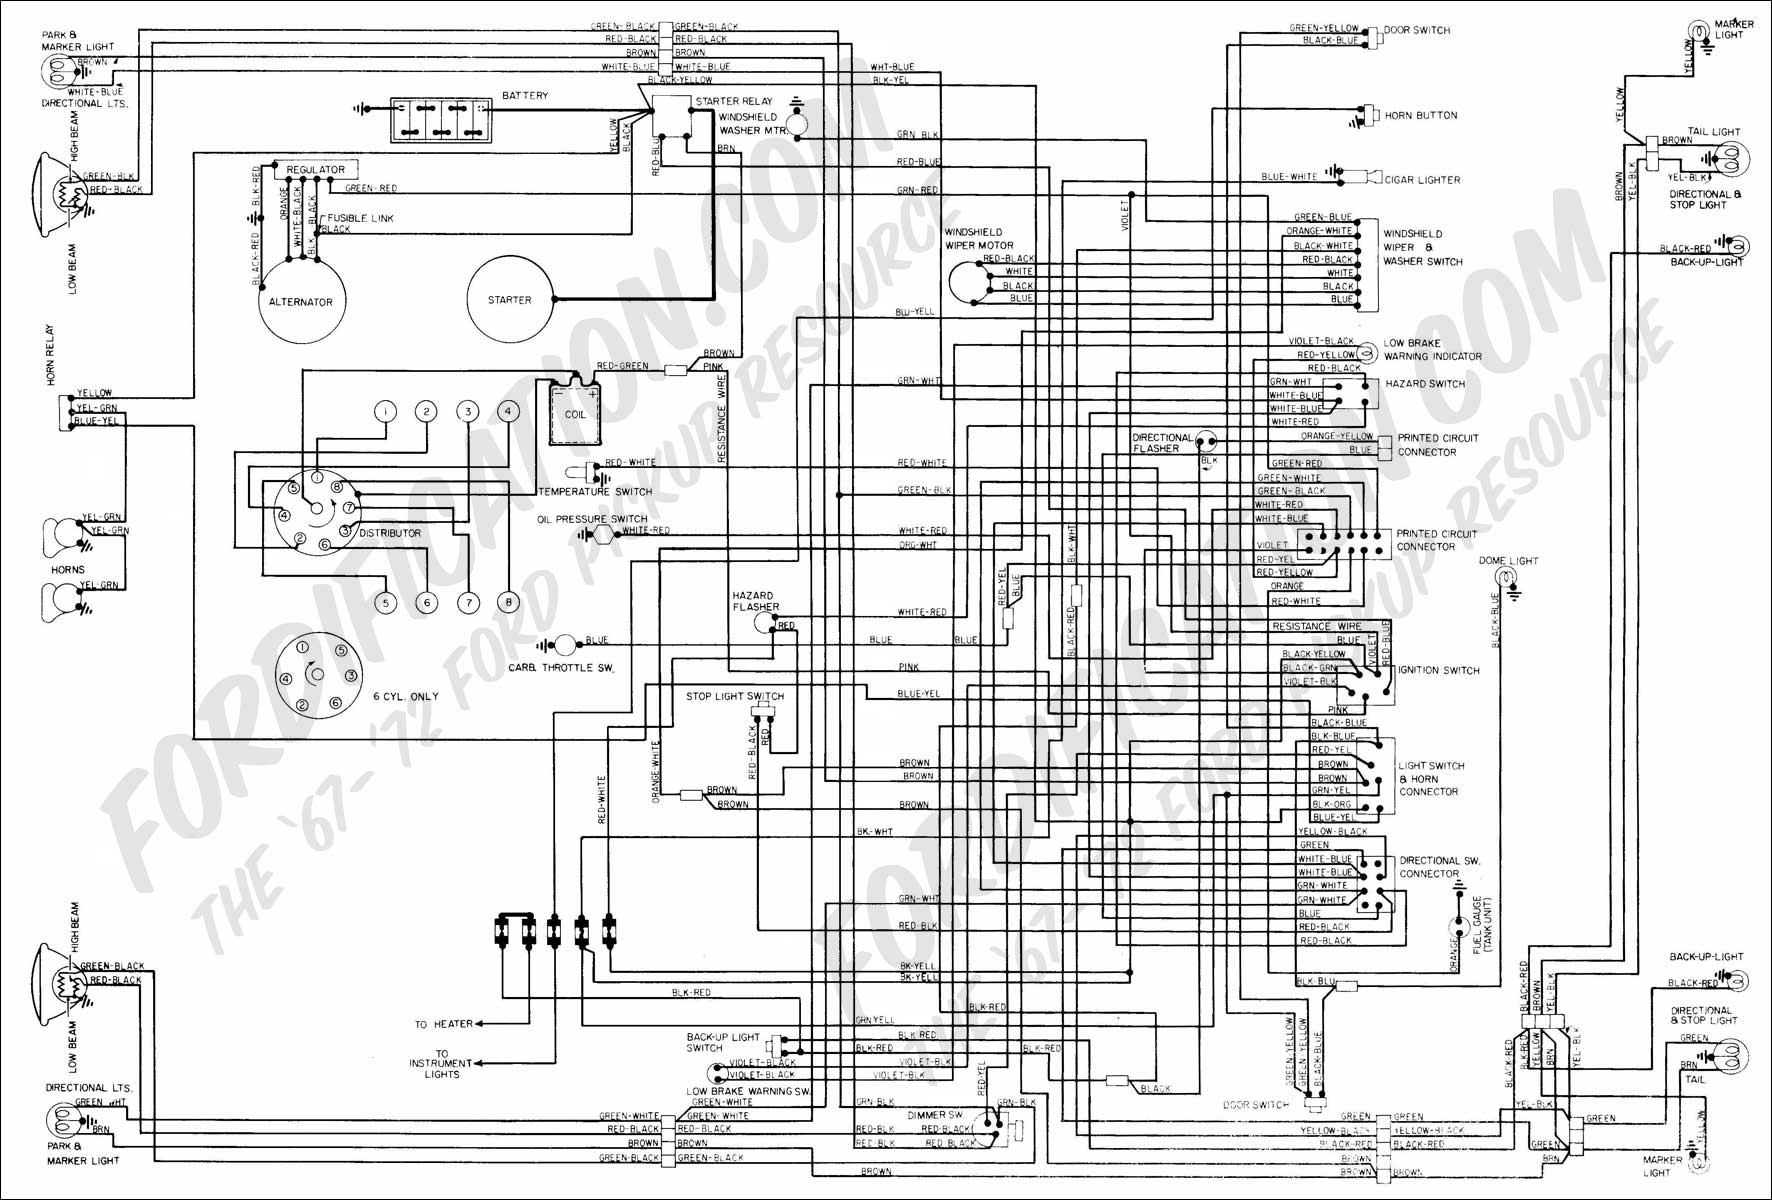 Dimmer Switch Wiring Diagram 2003 Ford Super Duty Worksheet And Toyota Sequoia 2000 F 250 Tail Light Schematics Diagrams U2022 Rh Parntesis Co Tundra From Pcm